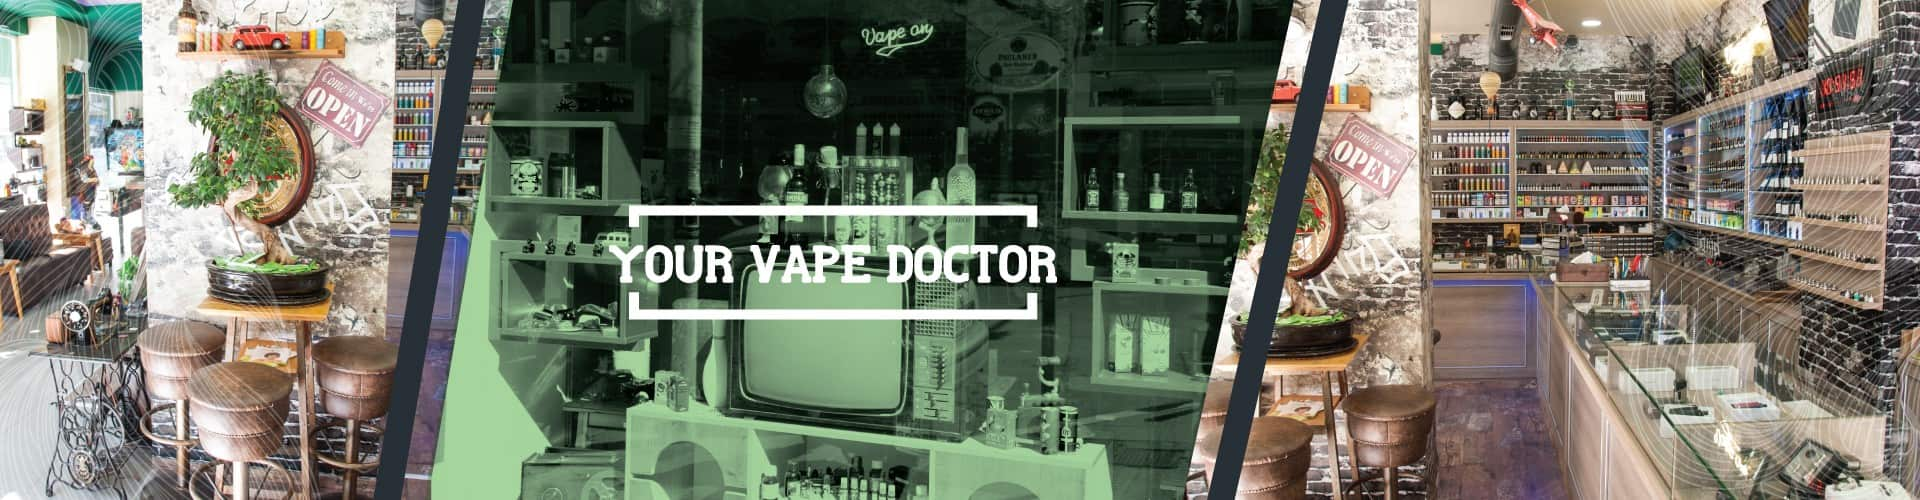 Doctor Antismoke | Your Vape Doctor